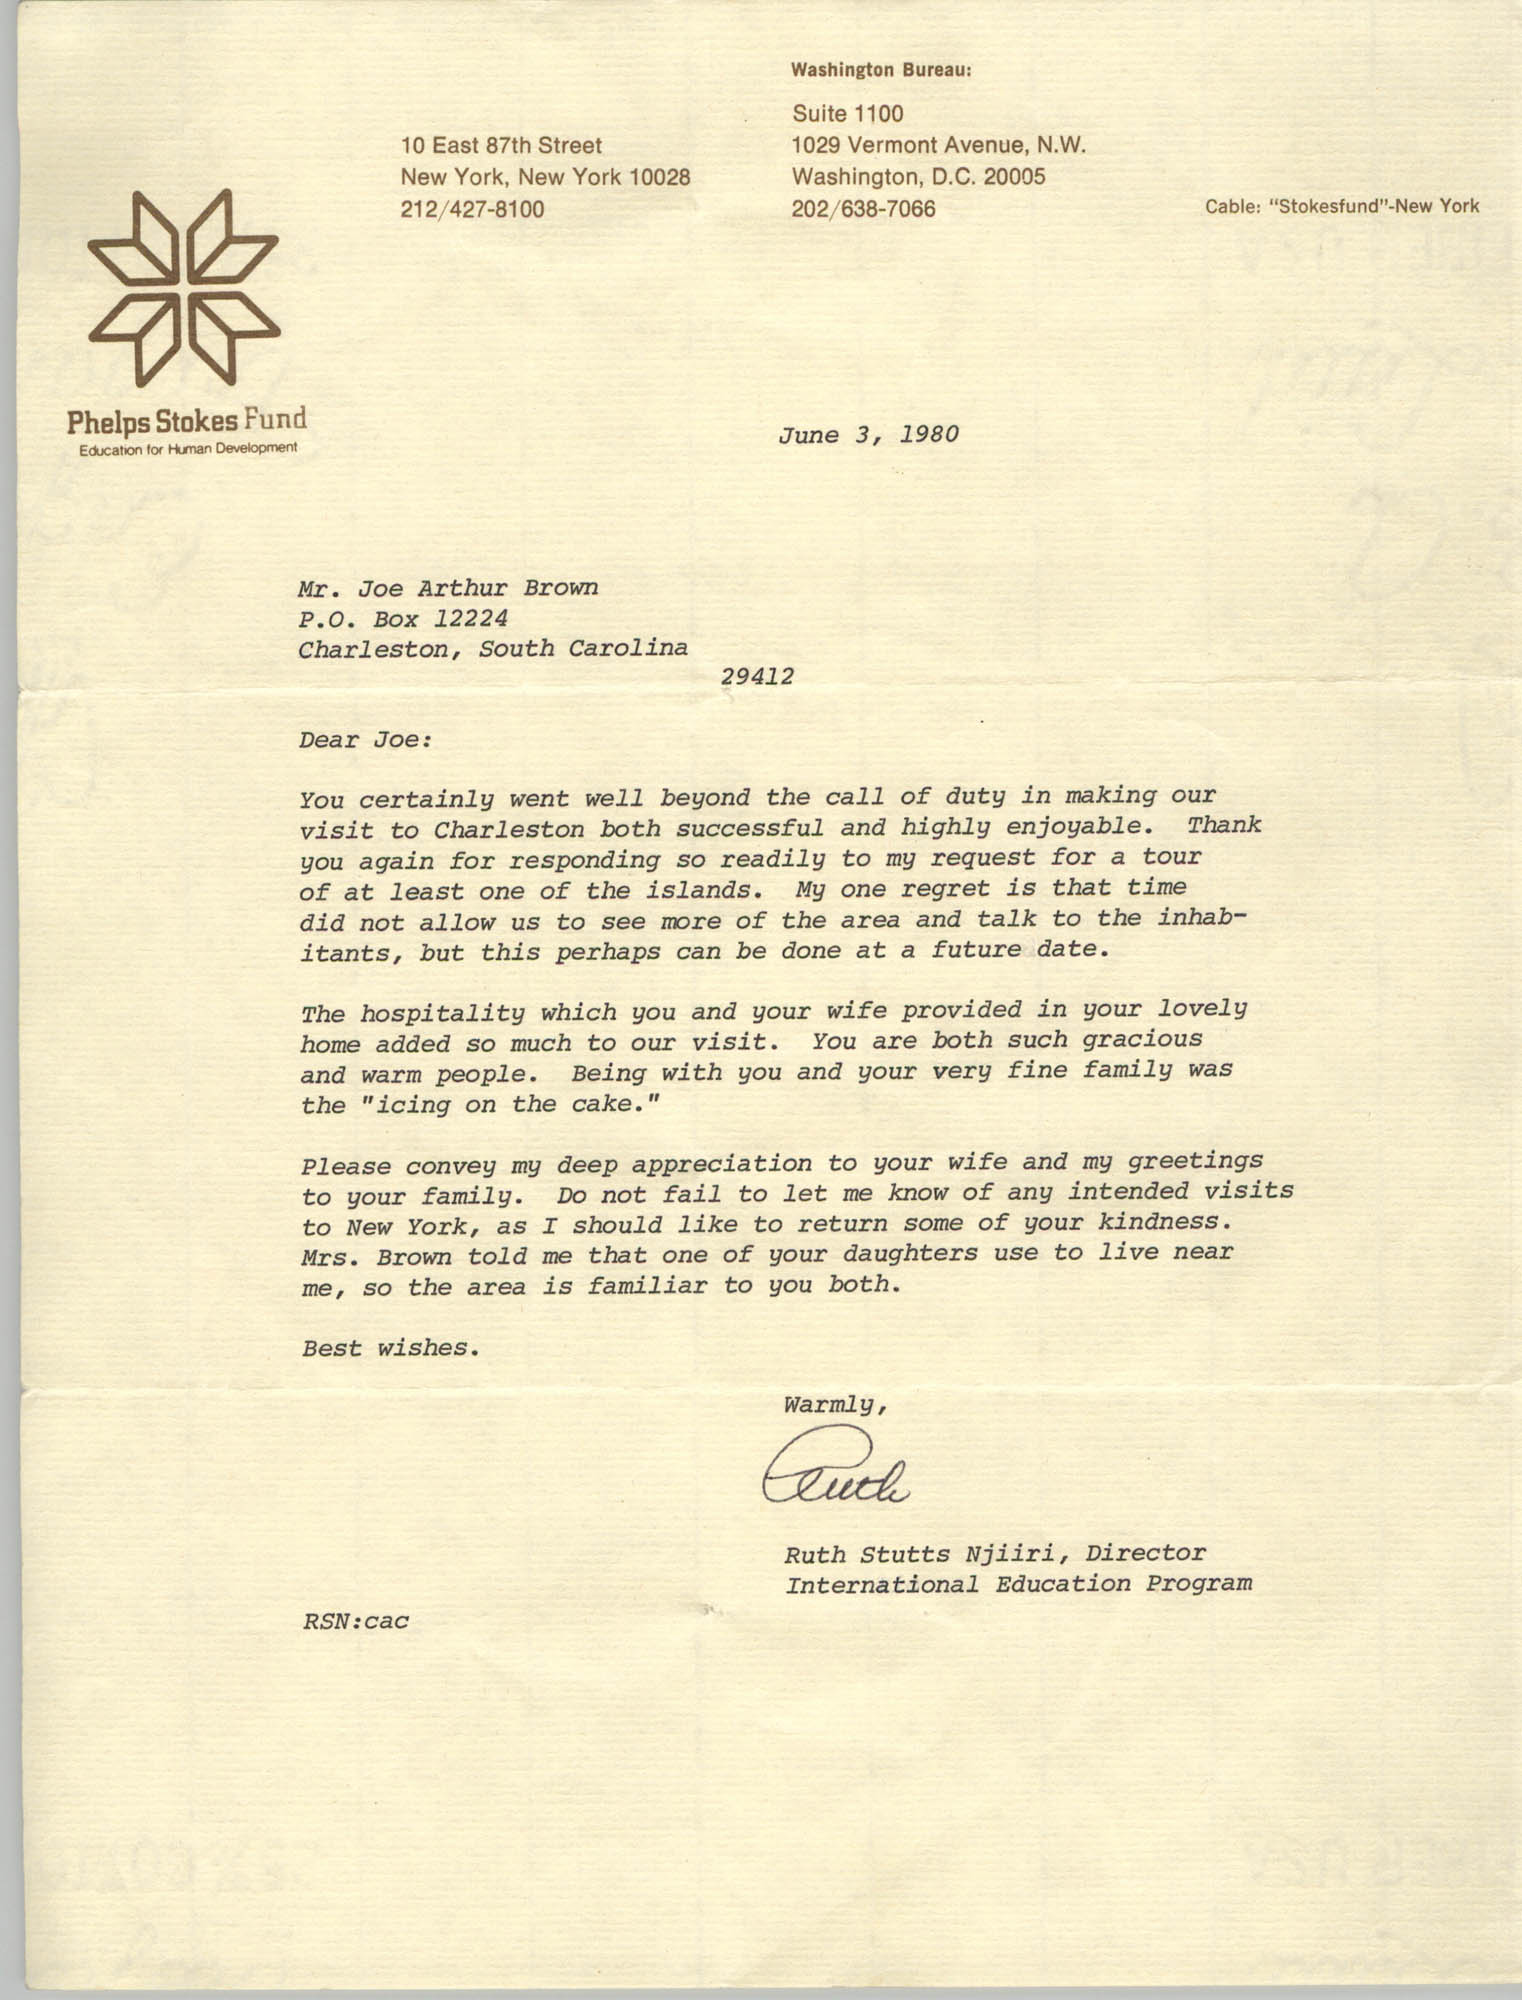 Letter from Ruth Stutts Njiiri to J. Arthur Brown, June 3, 1980